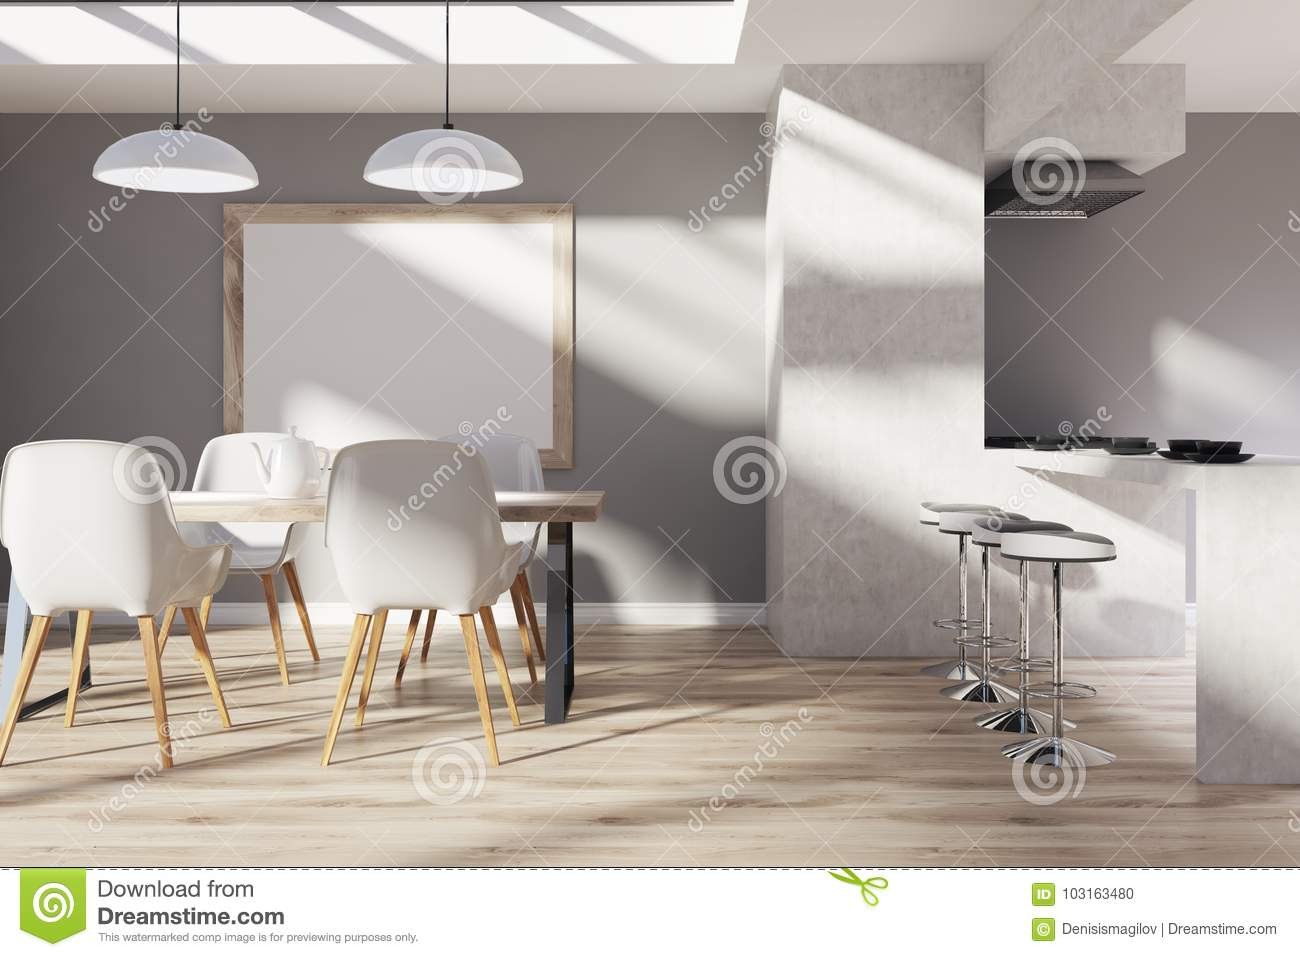 Kitchen Interior With Gray And Concrete Walls A Dining Table Cahirs Bar Stand Stools Wooden Floor Framed Vertical Poster On The Wall